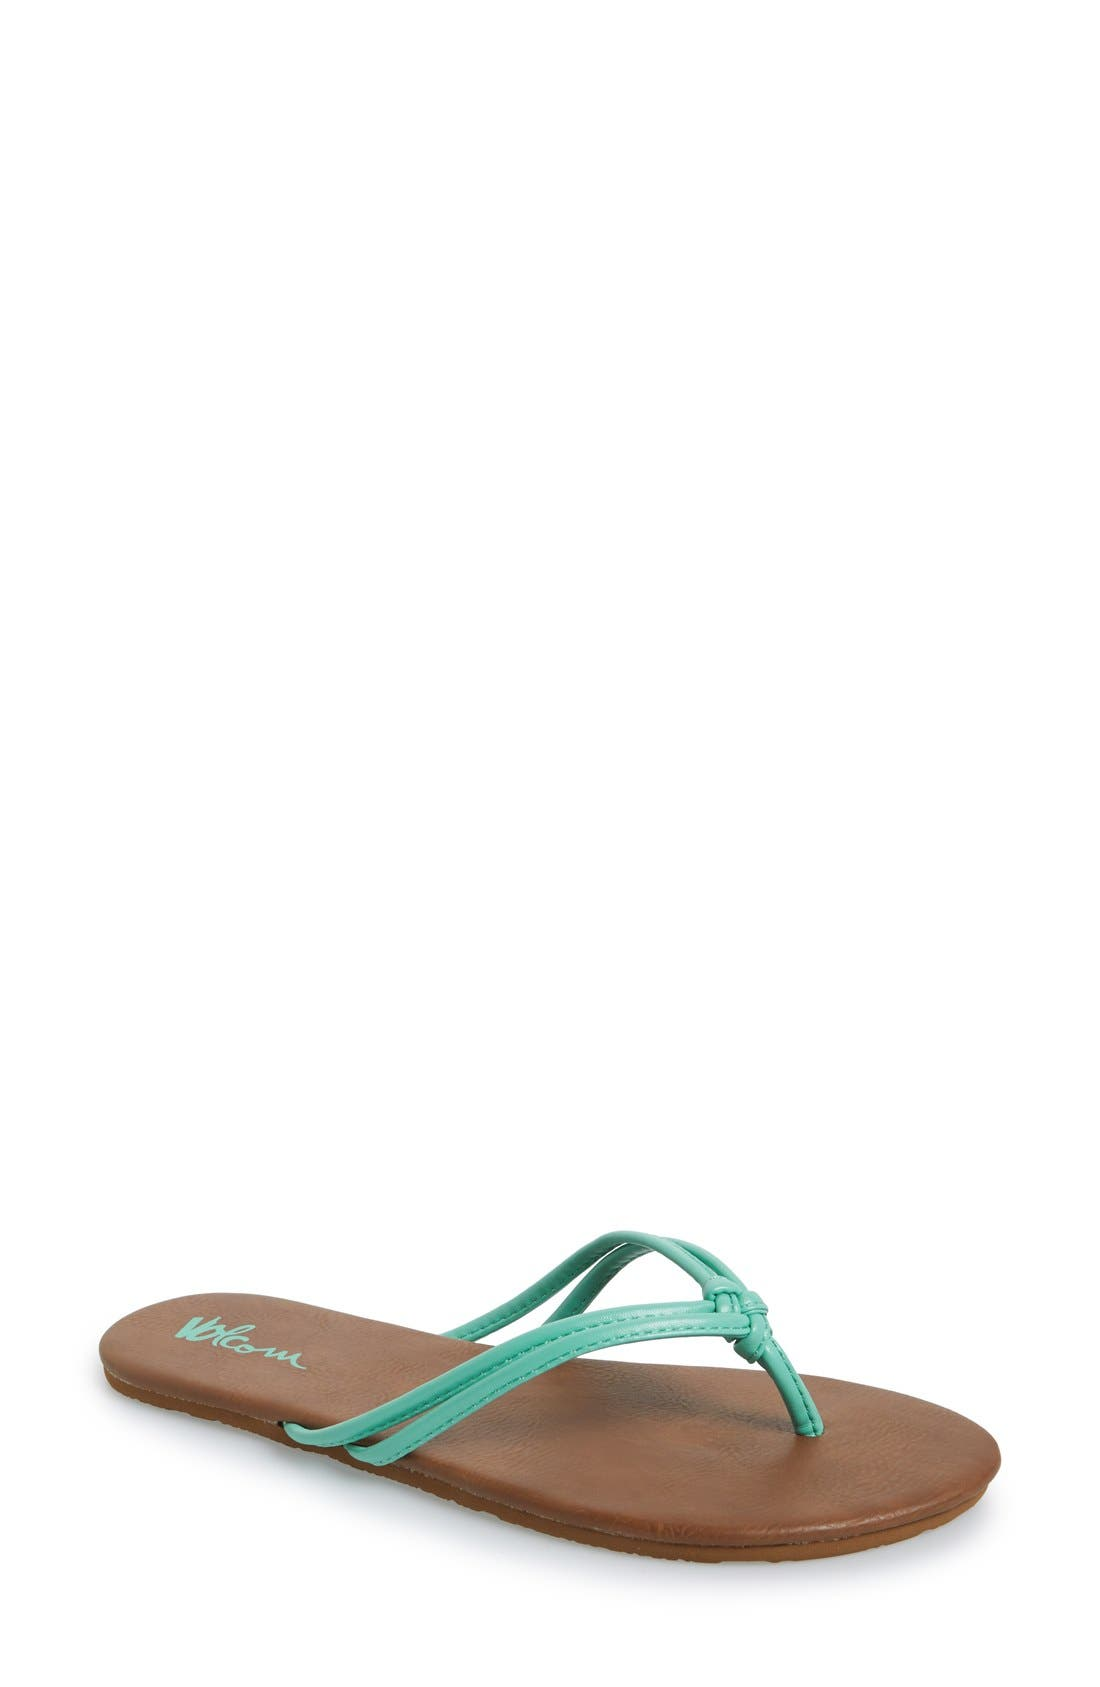 Alternate Image 1 Selected - Volcom 'Forever 2' Flip Flop (Women)